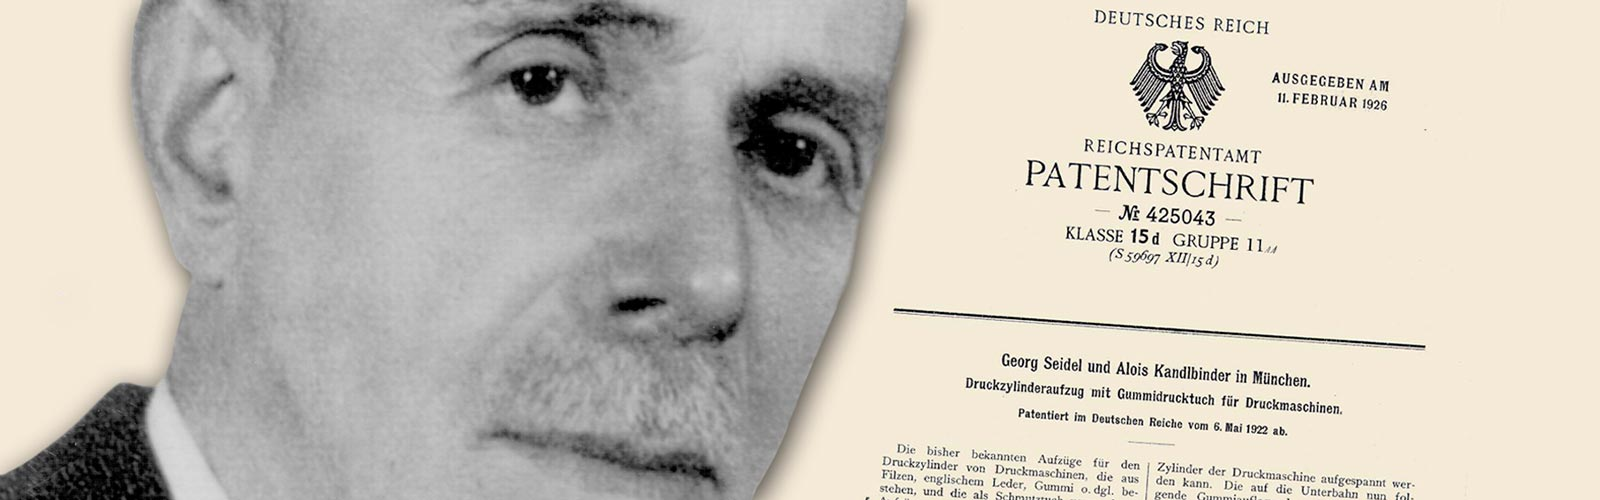 Alois Kandlbinder and his patent of 1922